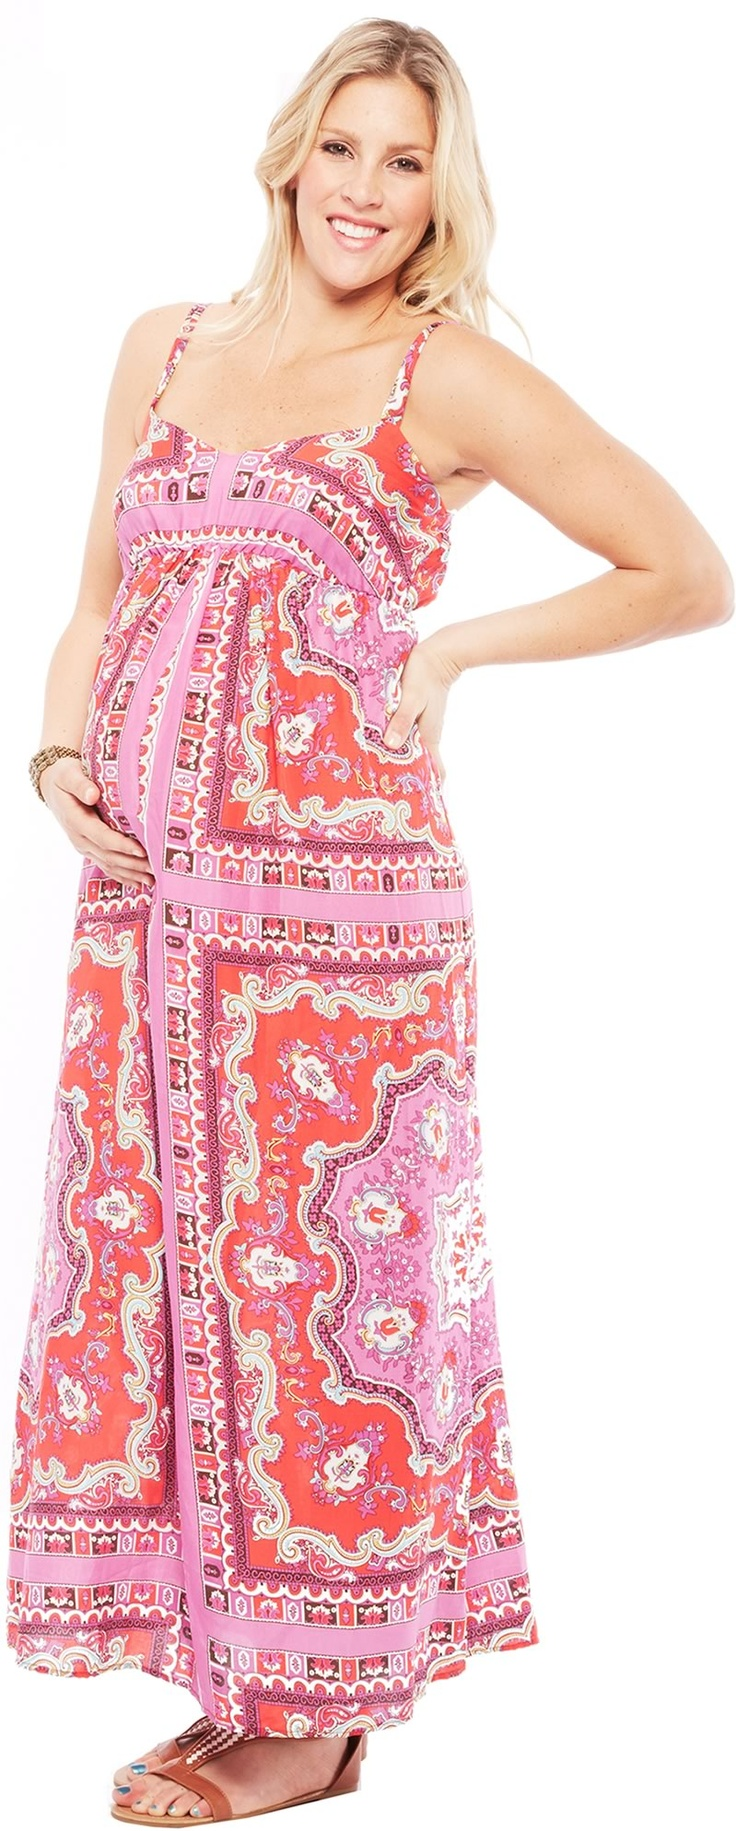 Athena massey red alert pictures to pin on pinterest - Jules Jim Print Maxi Maternity Maternitydresses